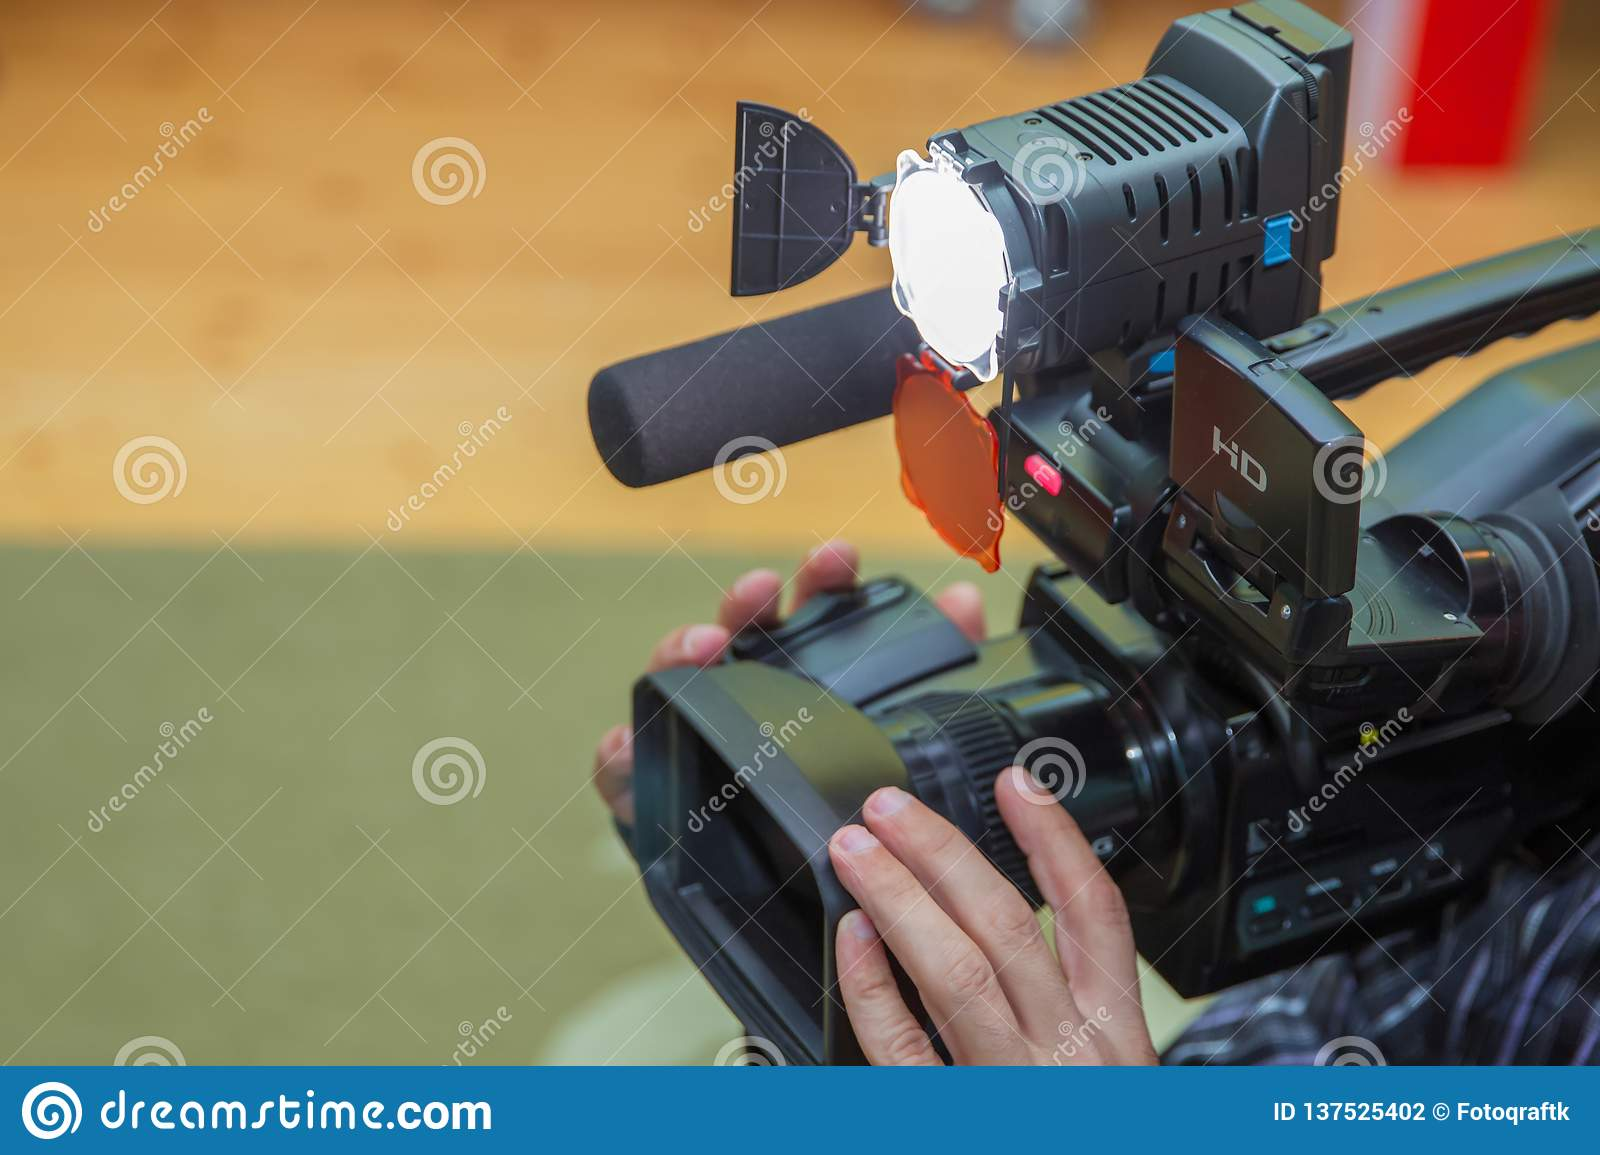 Covering an event with a video camera., Videographer takes video camera with free copy space for text., Video camera operator